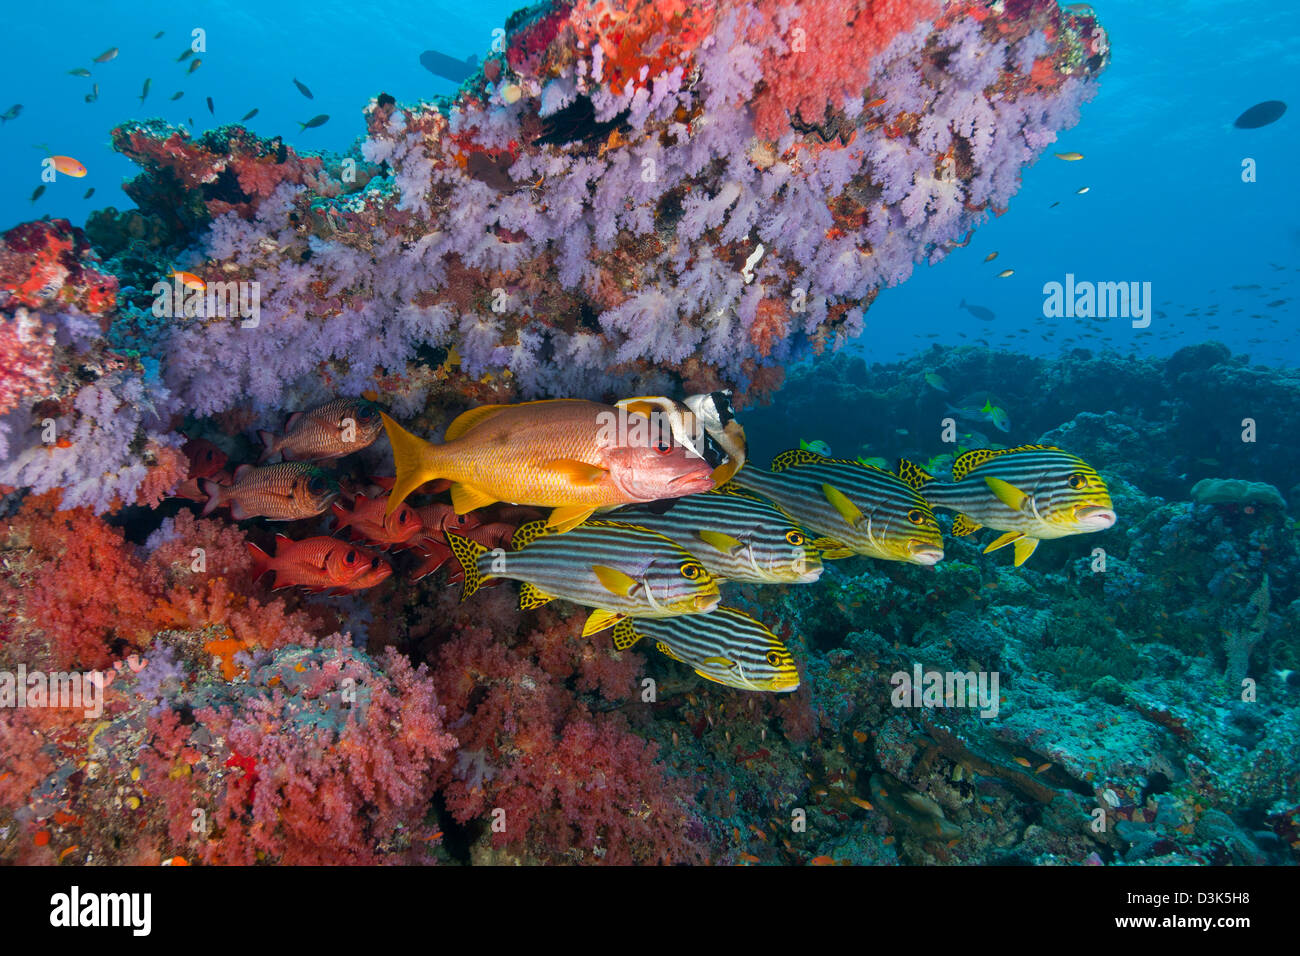 Colourful reef with purple and red hard and soft coral with anthias snapper bigeye and sweetlip fish, Maldives. Stock Photo